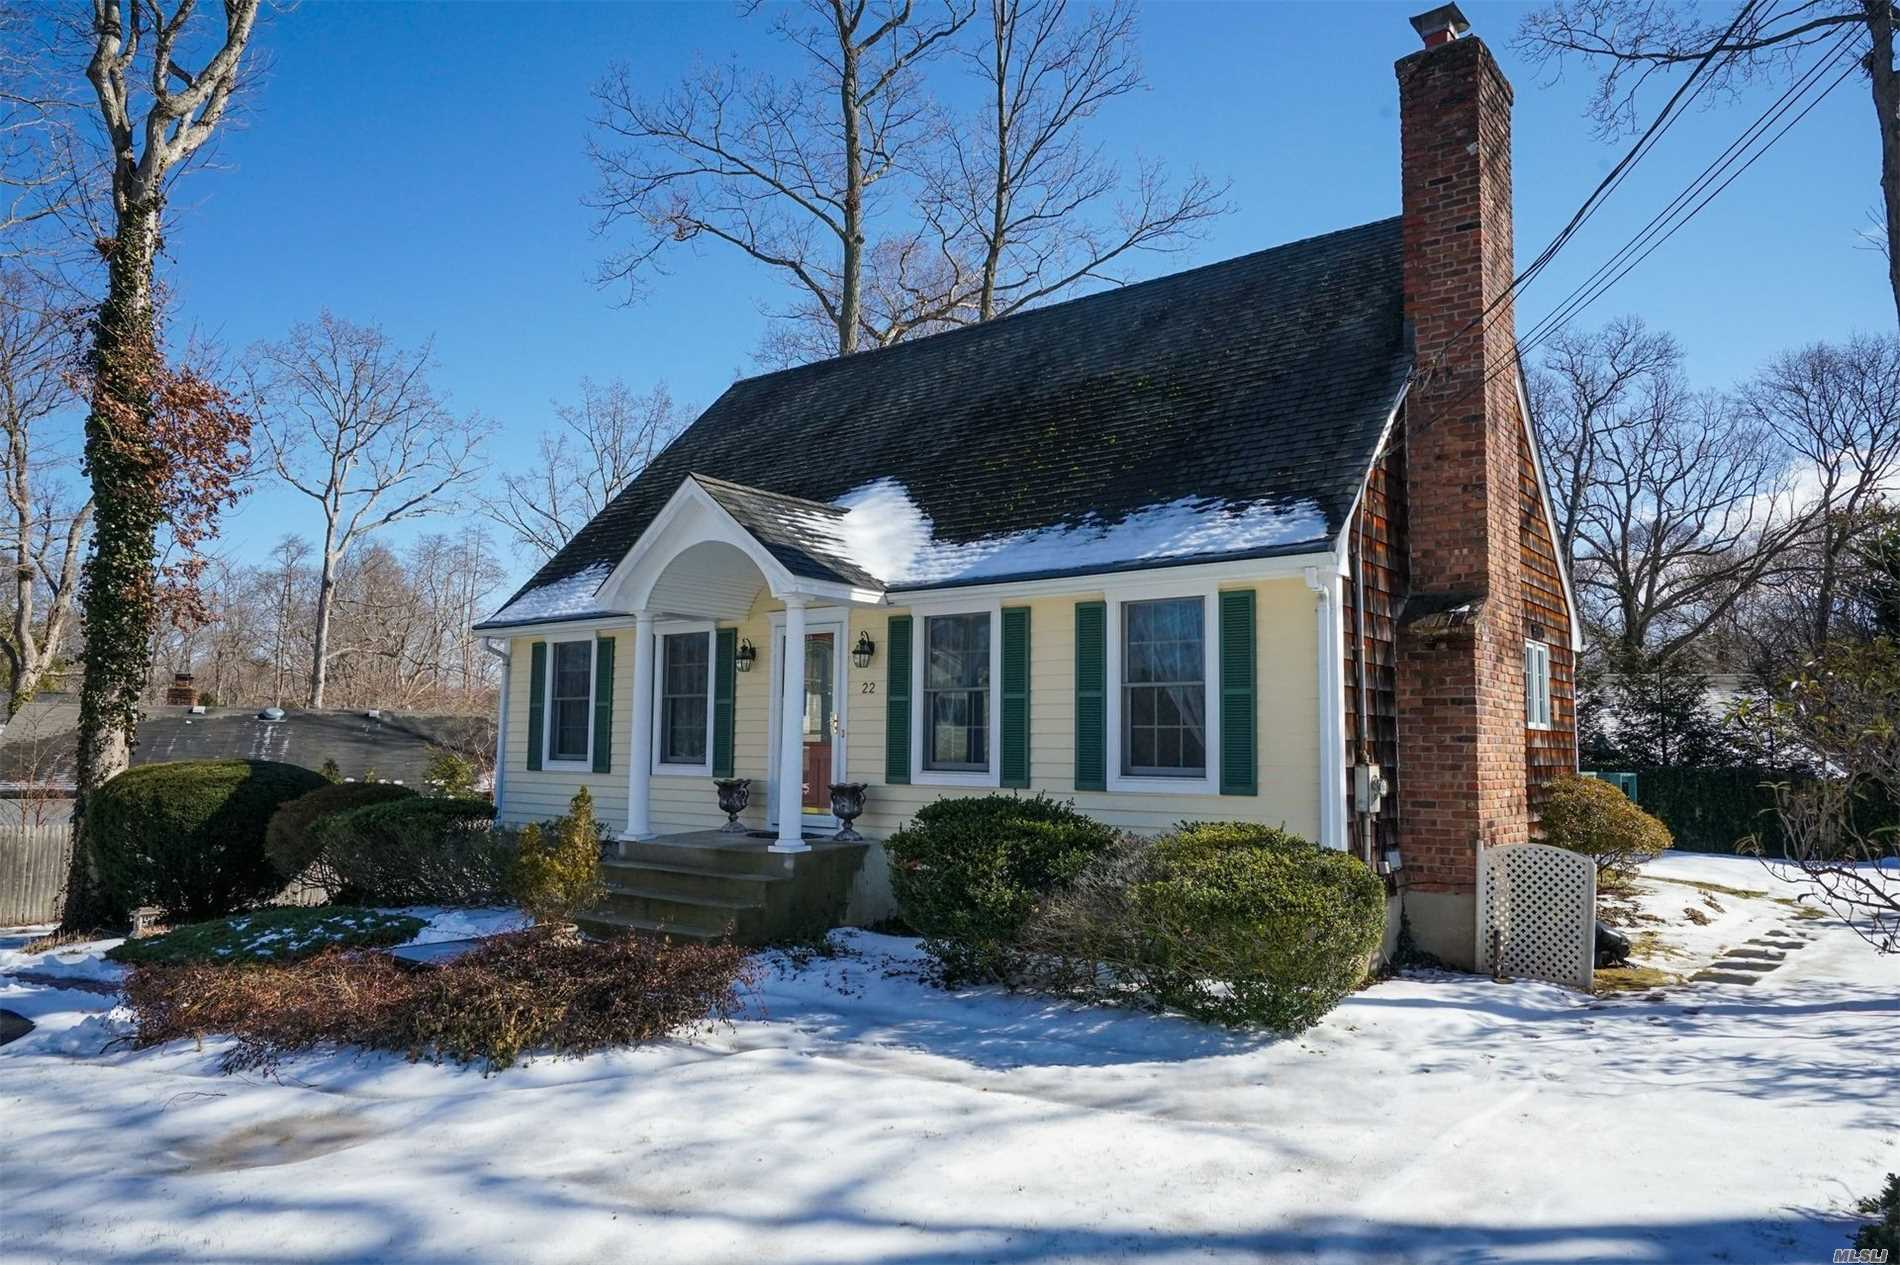 Photos Coming--Old Stony Brook--Walk To Lirr, Susb, Restaurants, Shopping, Beach & Village From This Charming 7-Room Cape With Fireplace, Some Hardwood Floors, Renovated Kitchen W/Dacor Refrigerator, Ss Appliances, Silestone Counters & Backsplash, Washer/Dryer 2018, Shower Doors & Front Storm Door 2017, Oil Burner 2015, Hunter Douglas Blinds.